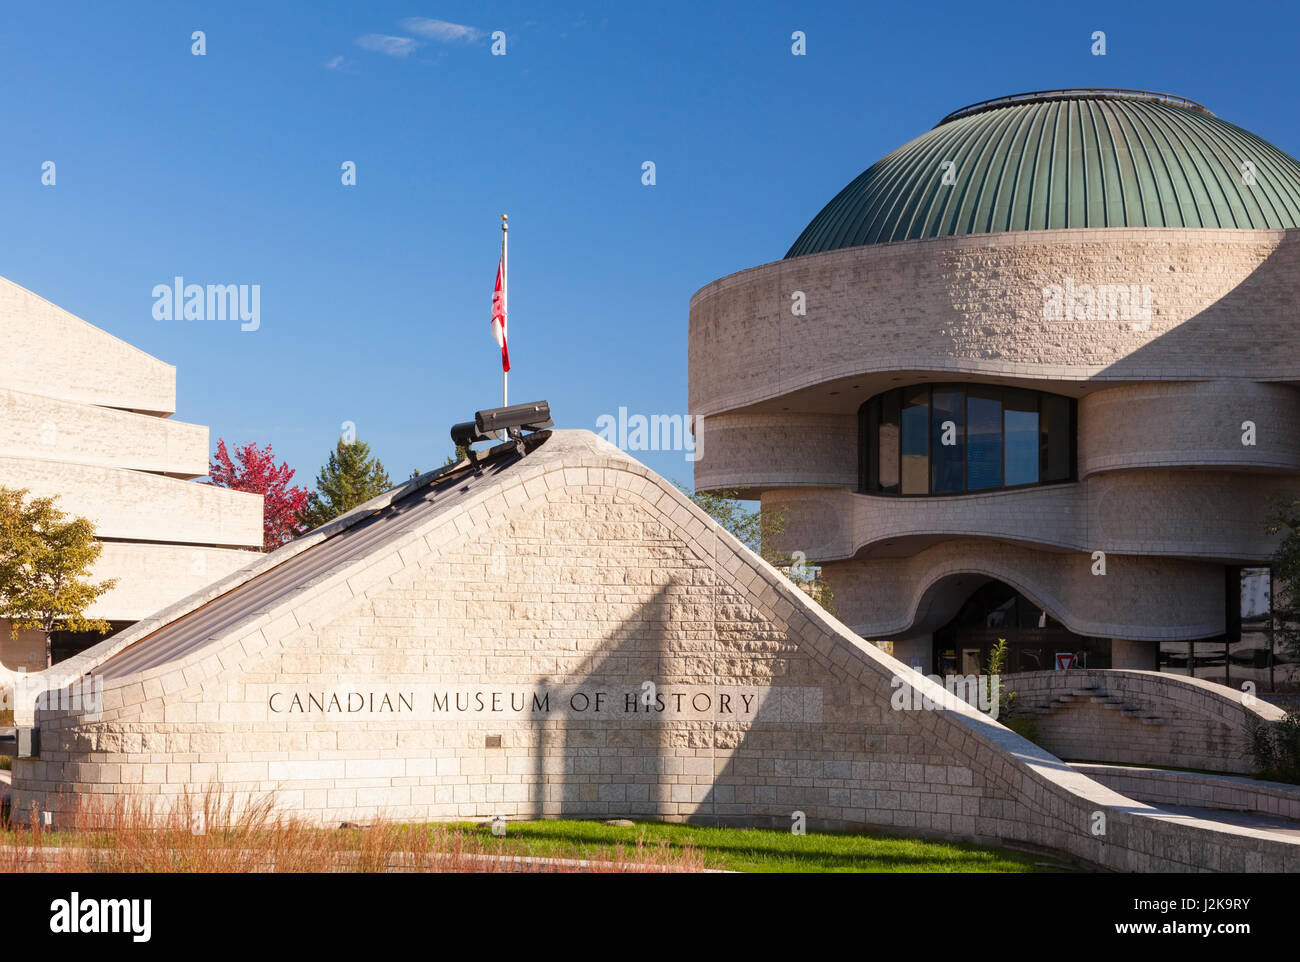 Canadian museum of civilization stock photos canadian for Museum of civilization quebec